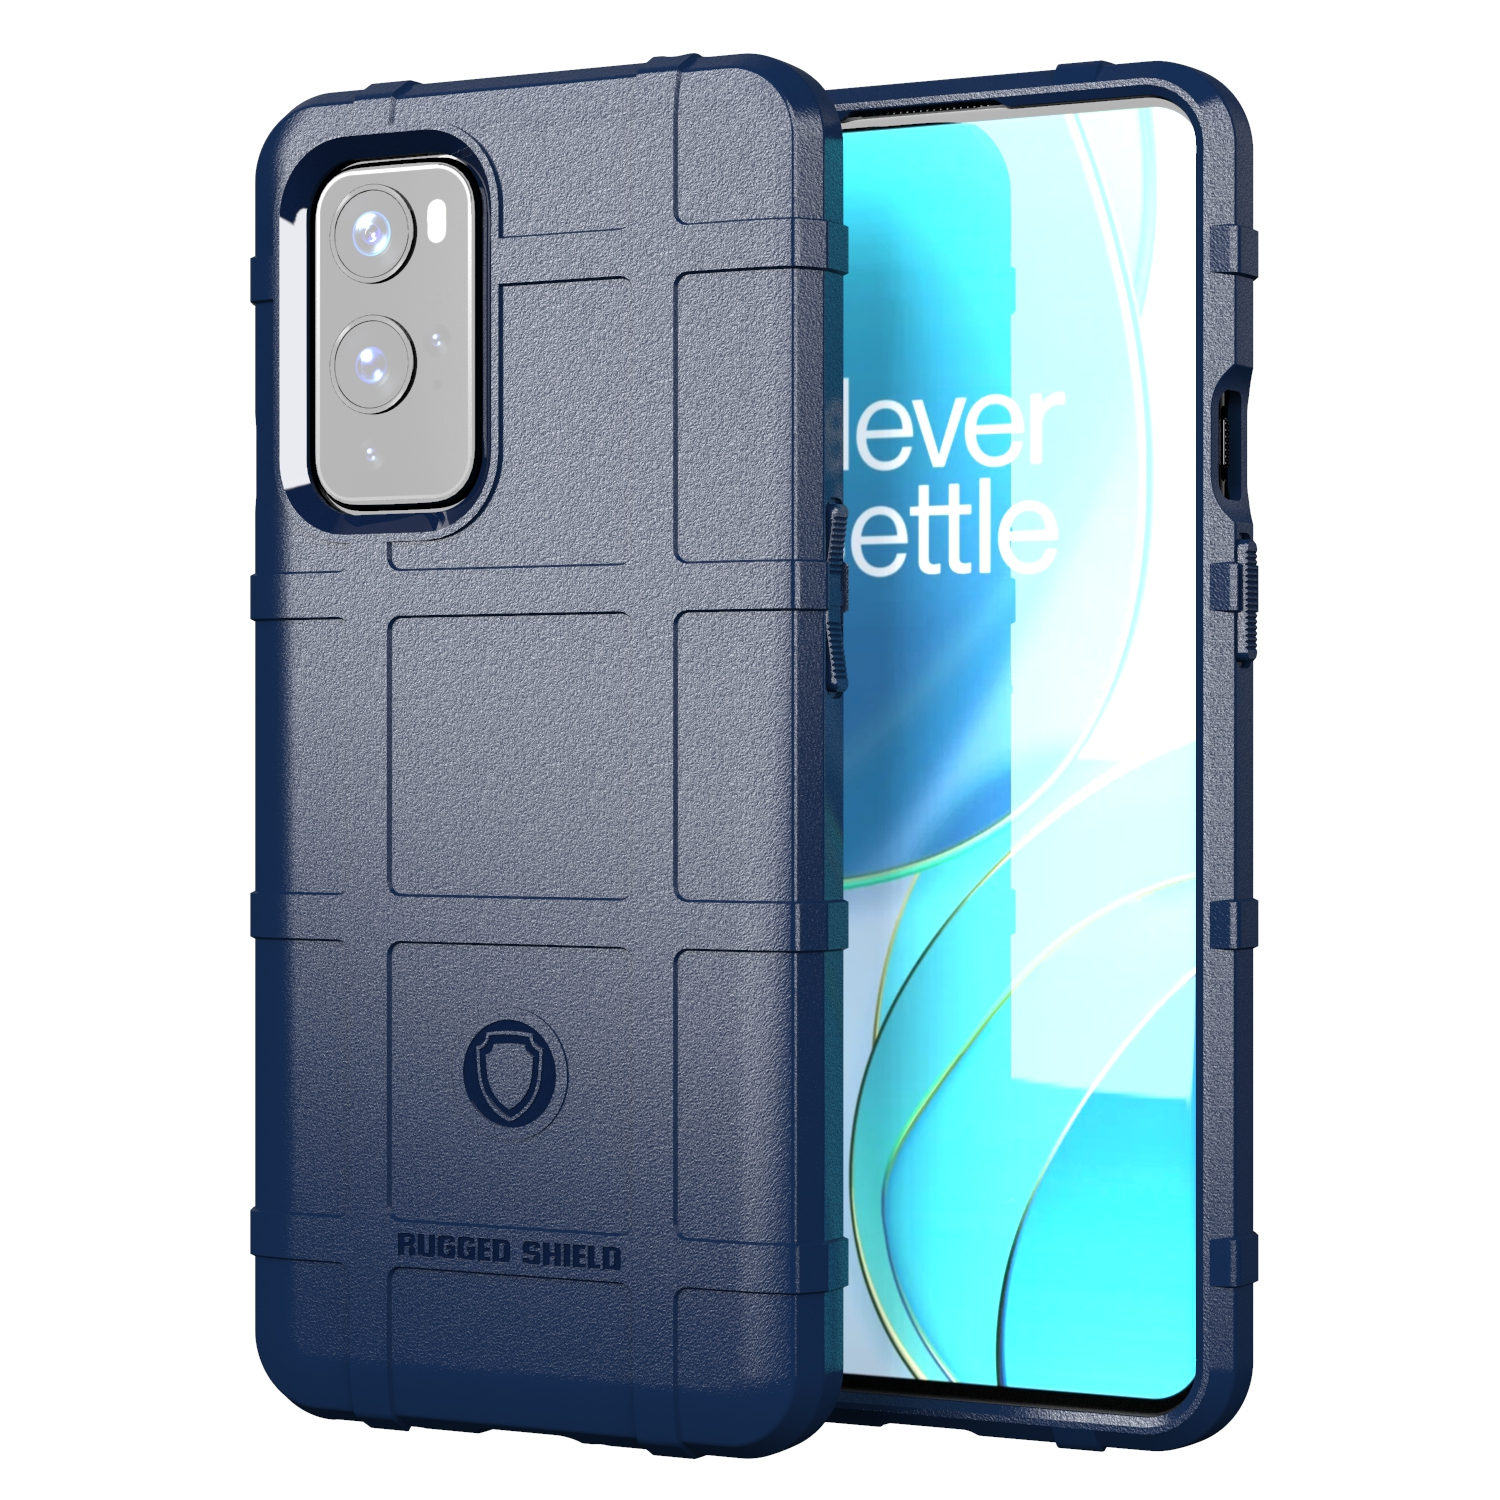 Shockproof TPU Mobile Phone Cases For OnePlus 9E (Blue)